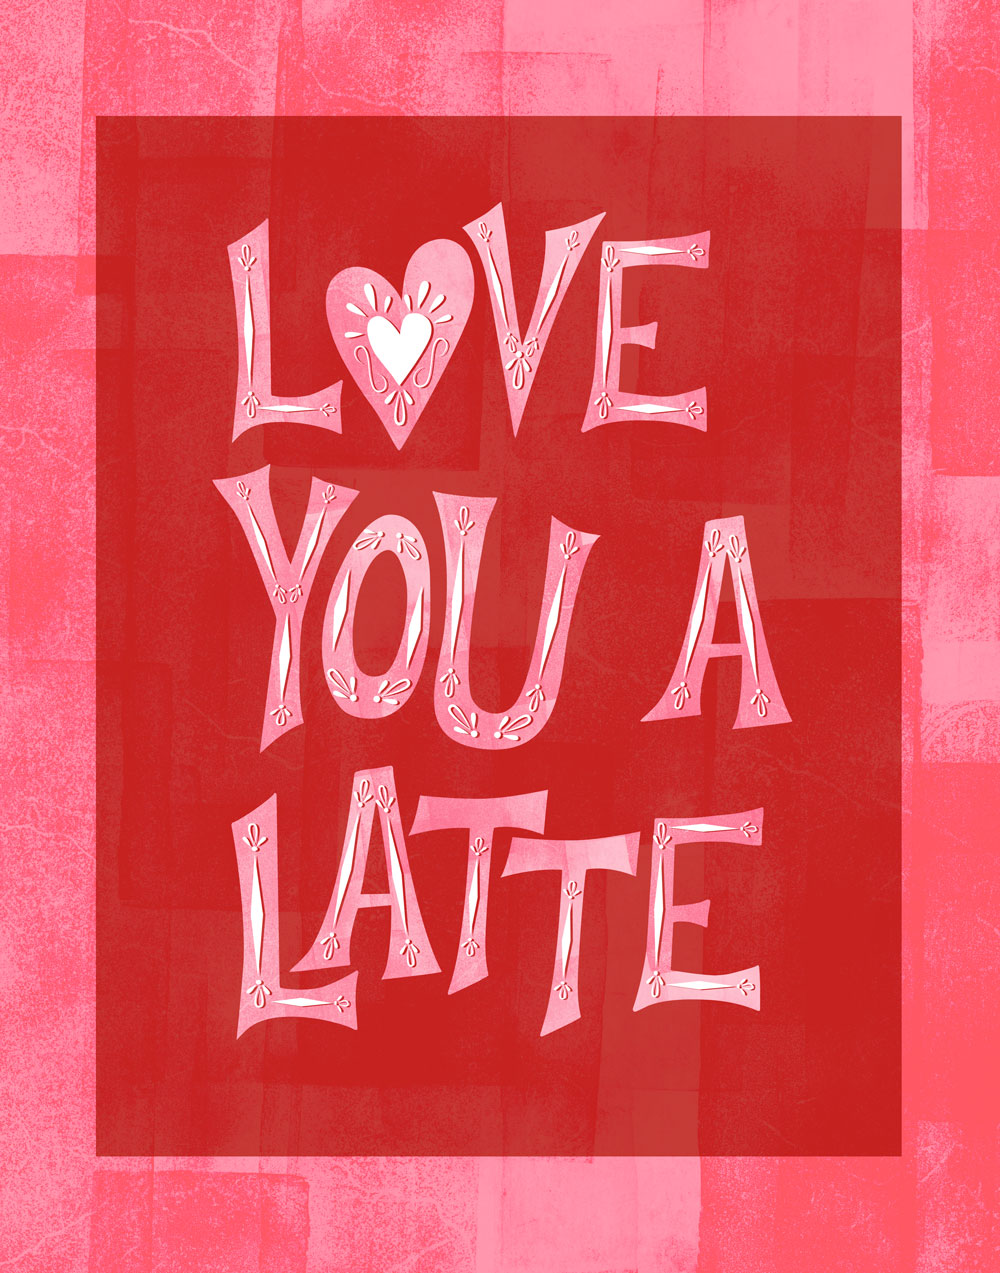 Love You a Latte lettering by Bryna Shields